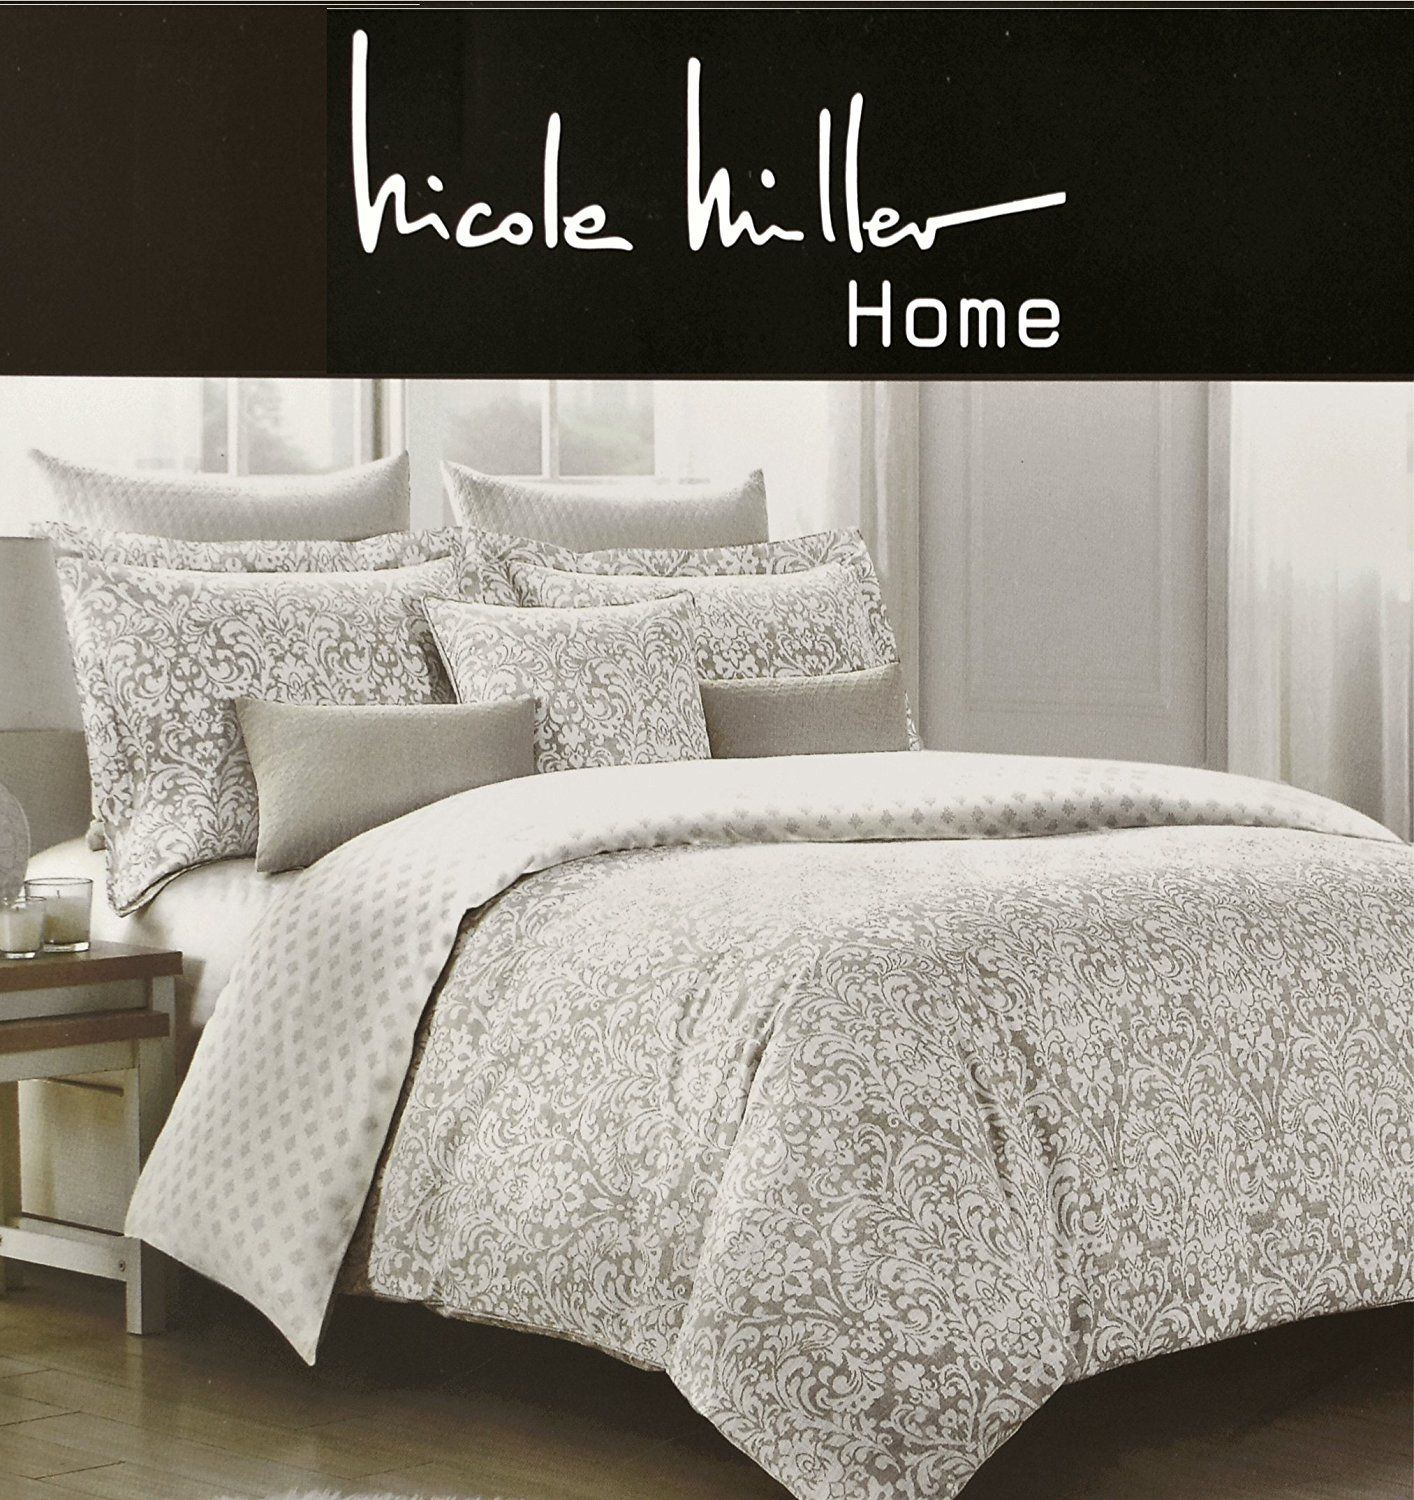 Amazon Com Nicole Miller Home Full Queen Duvet Cover And Shams Set Gray Taupe Paisley Moroccan Medallion Print H Queen Duvet Covers Queen Duvet Miller Homes